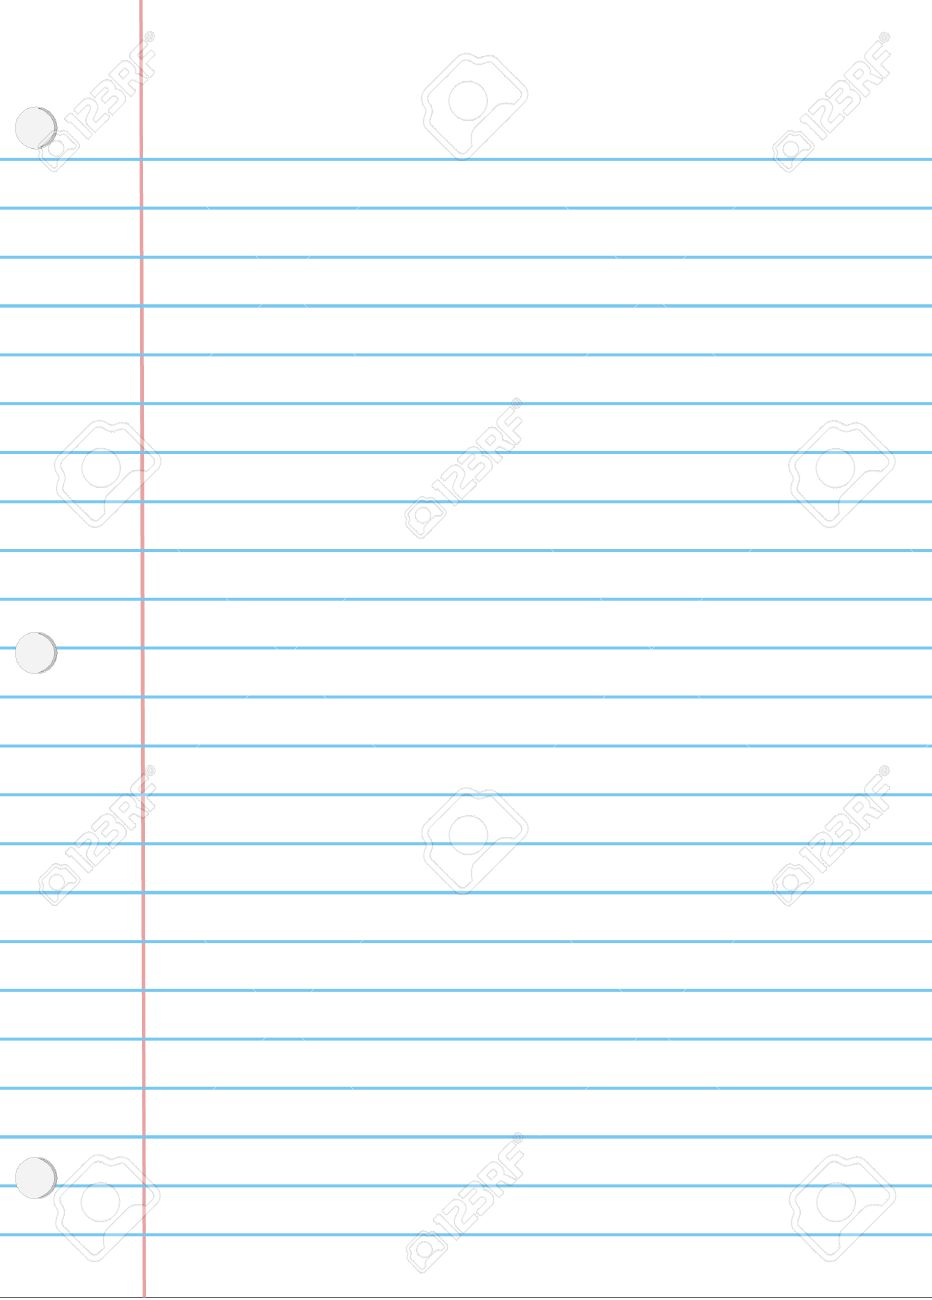 A Vector Illustration Of A Piece Of Loose Leaf Notebook Paper – Notebook Paper